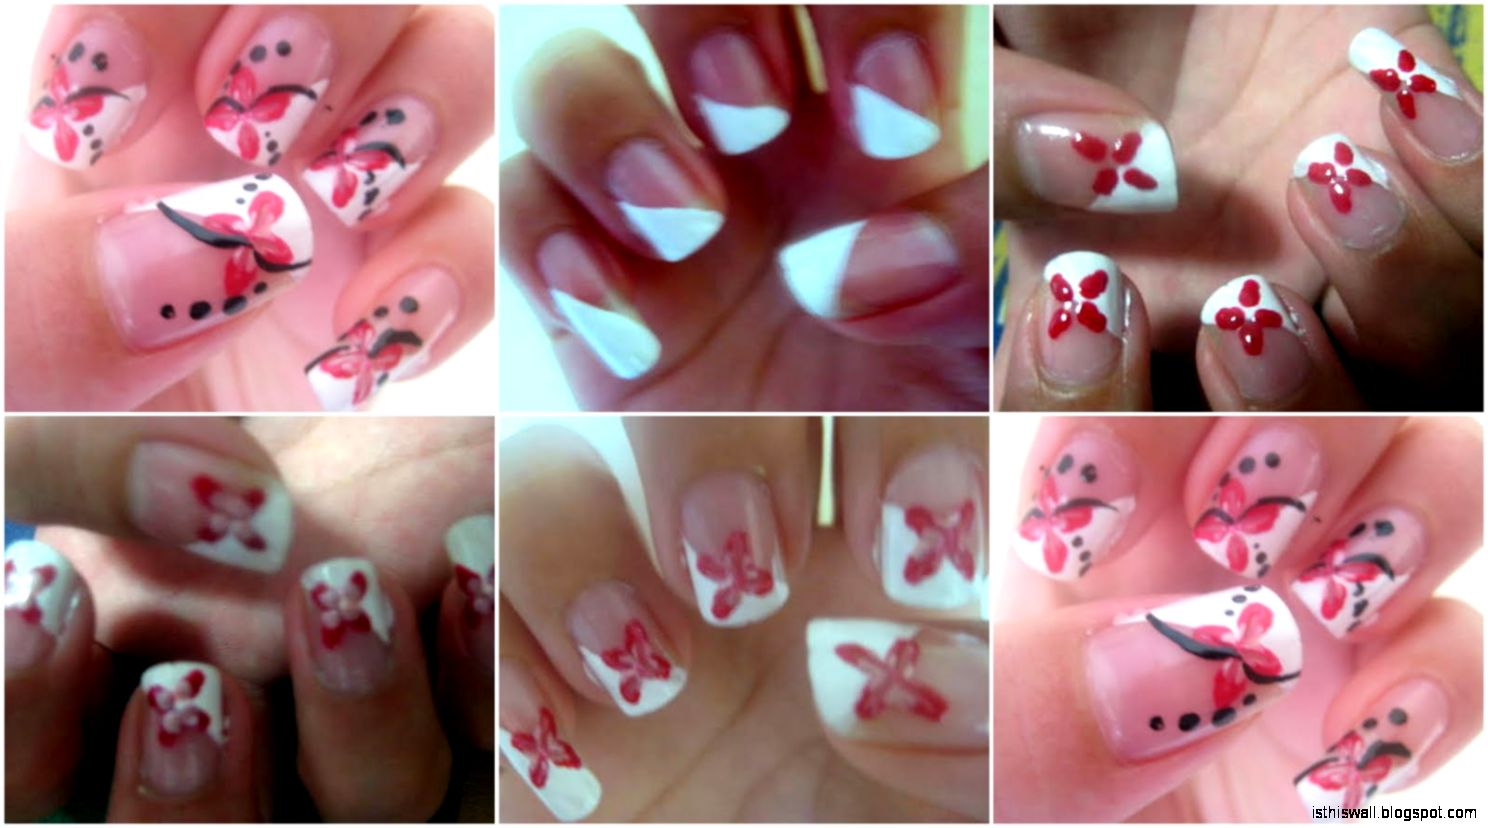 Nails  Simple Fingernail Cool Home Nail Designs Ideas Home - Nail designs home